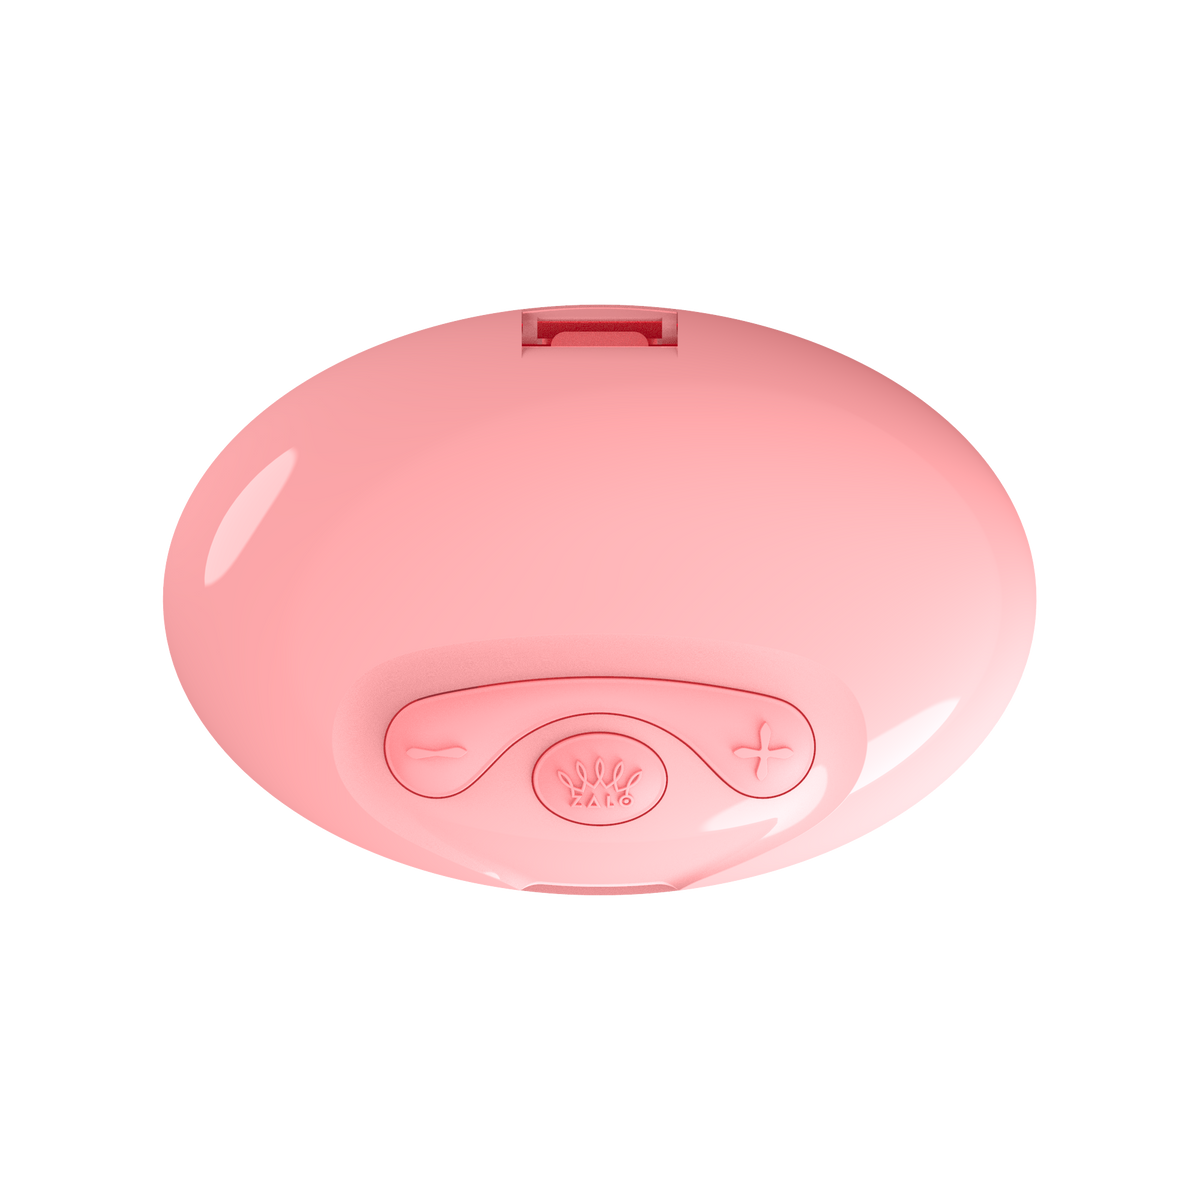 Amorette Remote-Controlled Vibrating Egg Fairy Pink